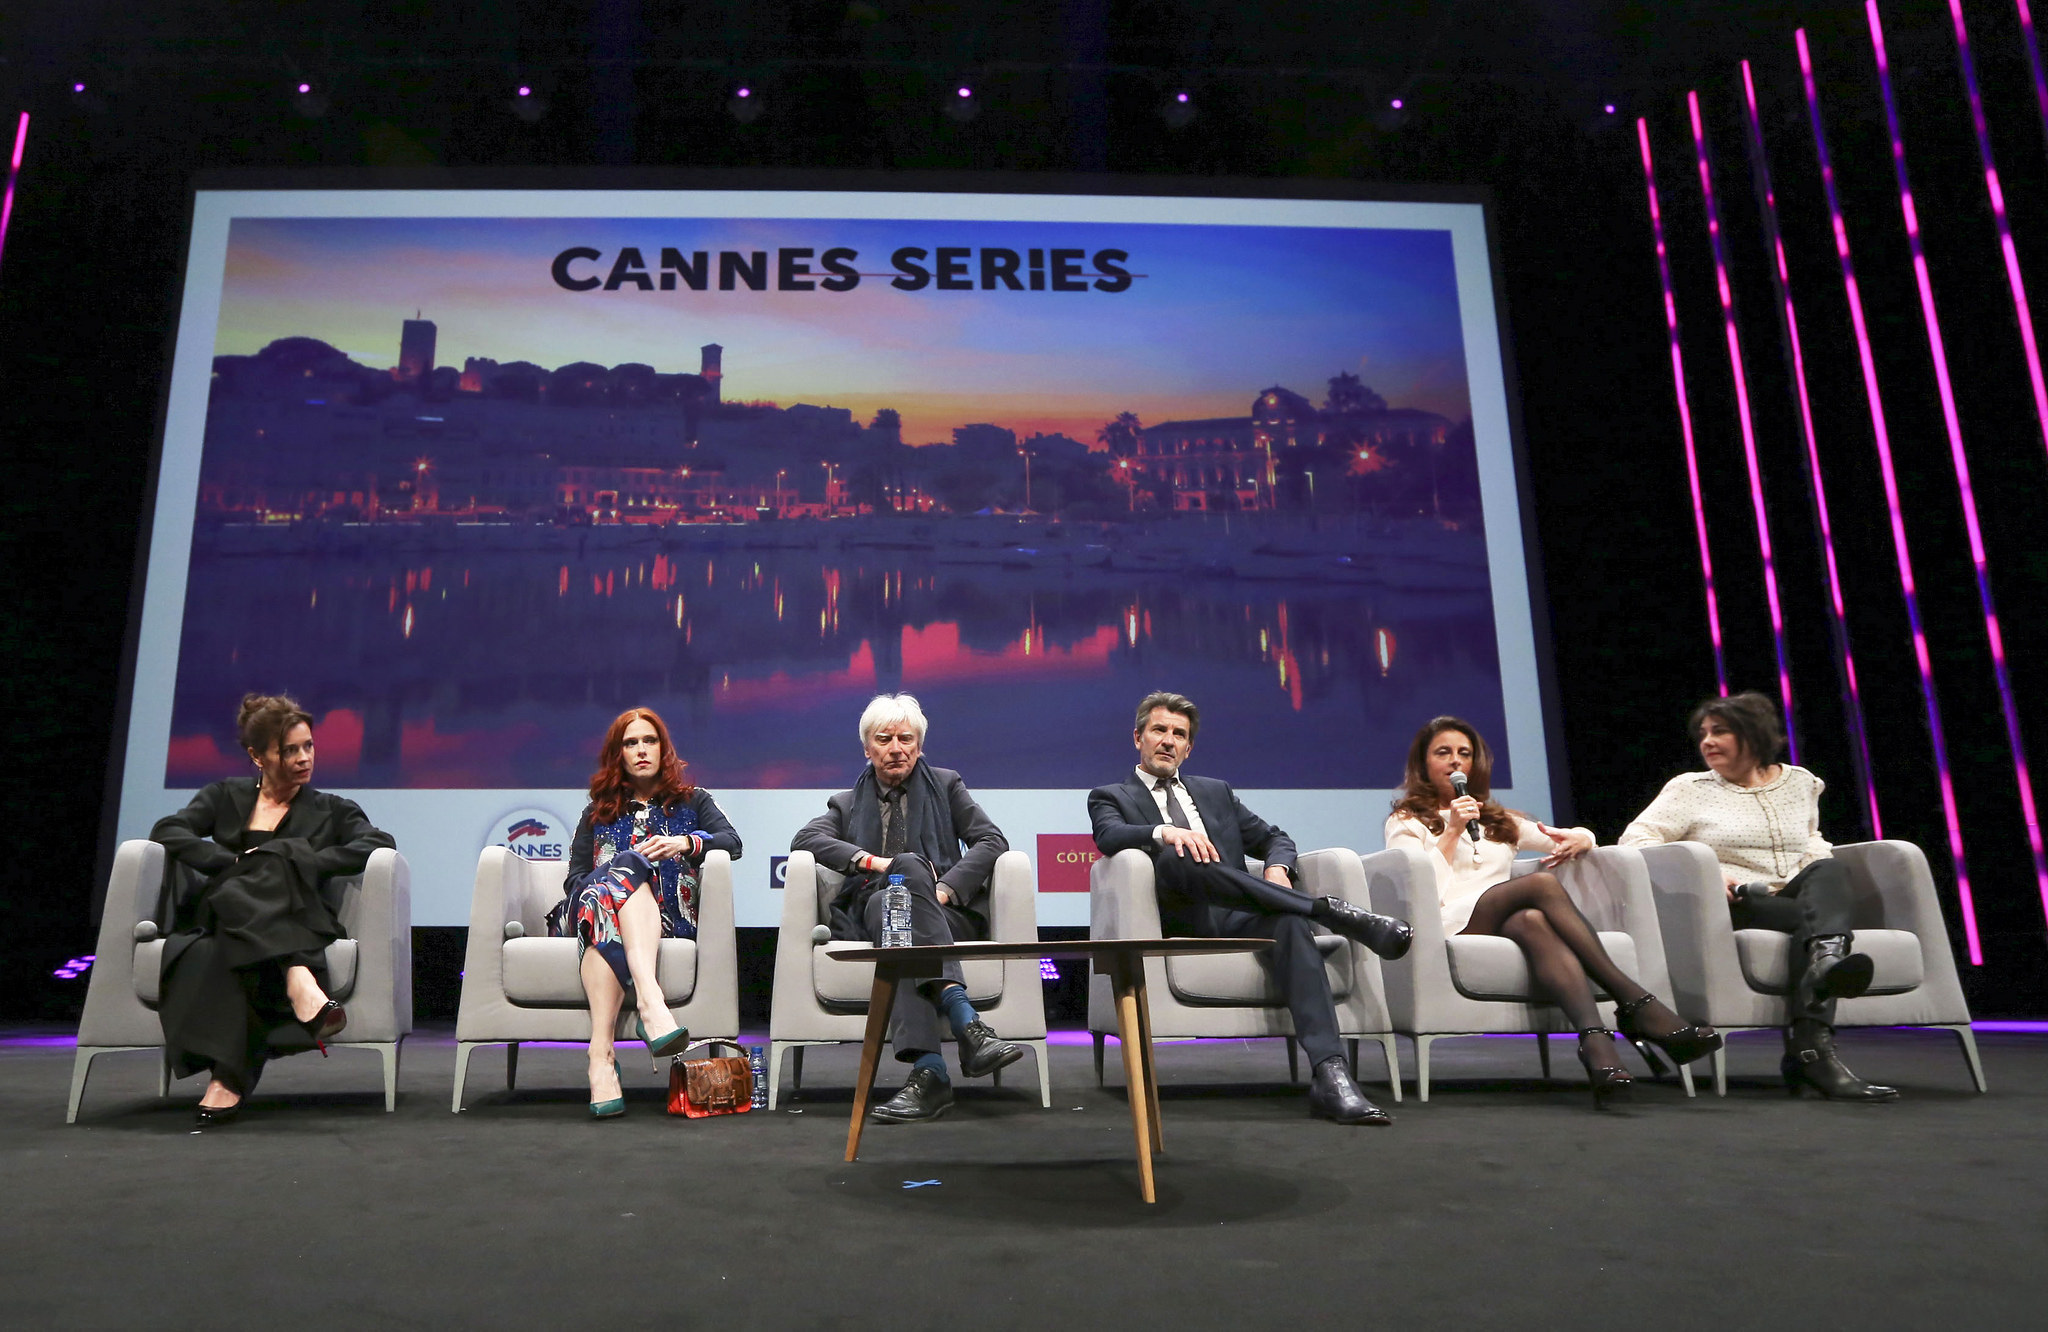 Cannes Series, the new festival showcasing TV series officially presented